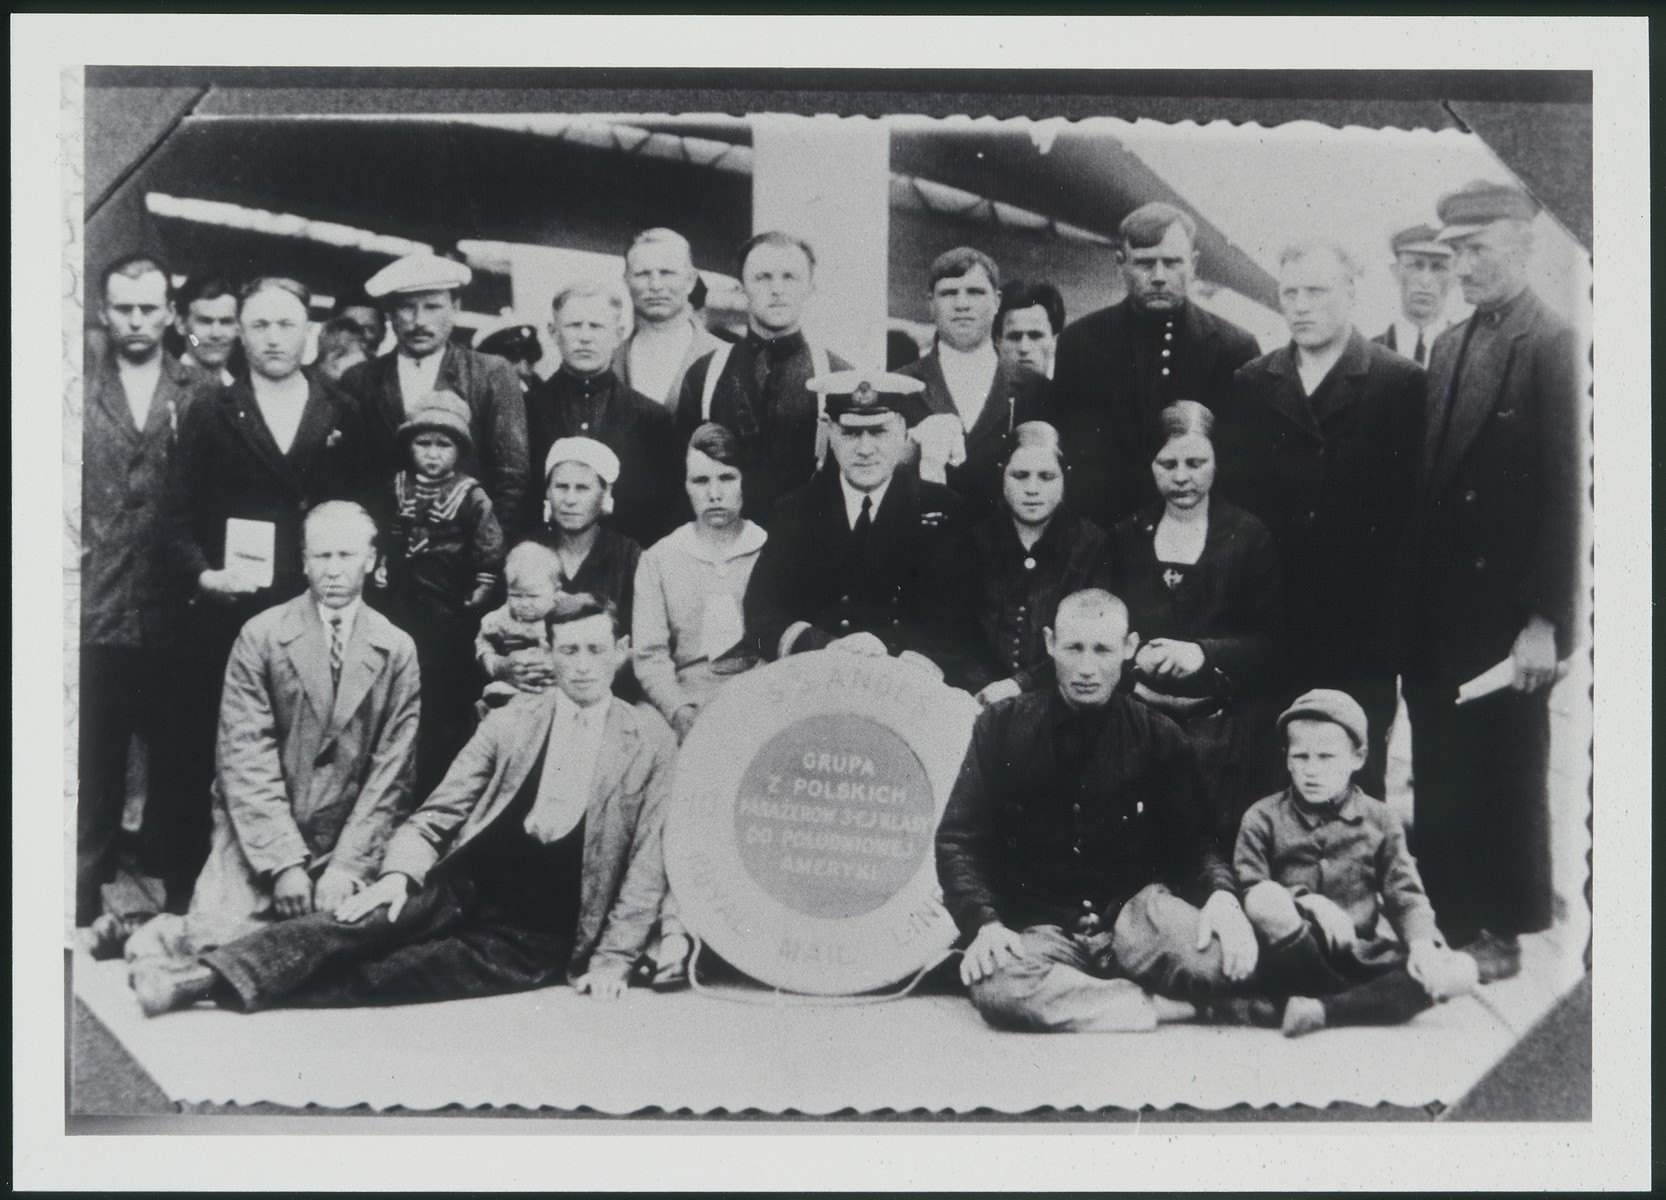 The father of Avraham Aviel poses on the deck of a ship along with other passengers while on route to South America.